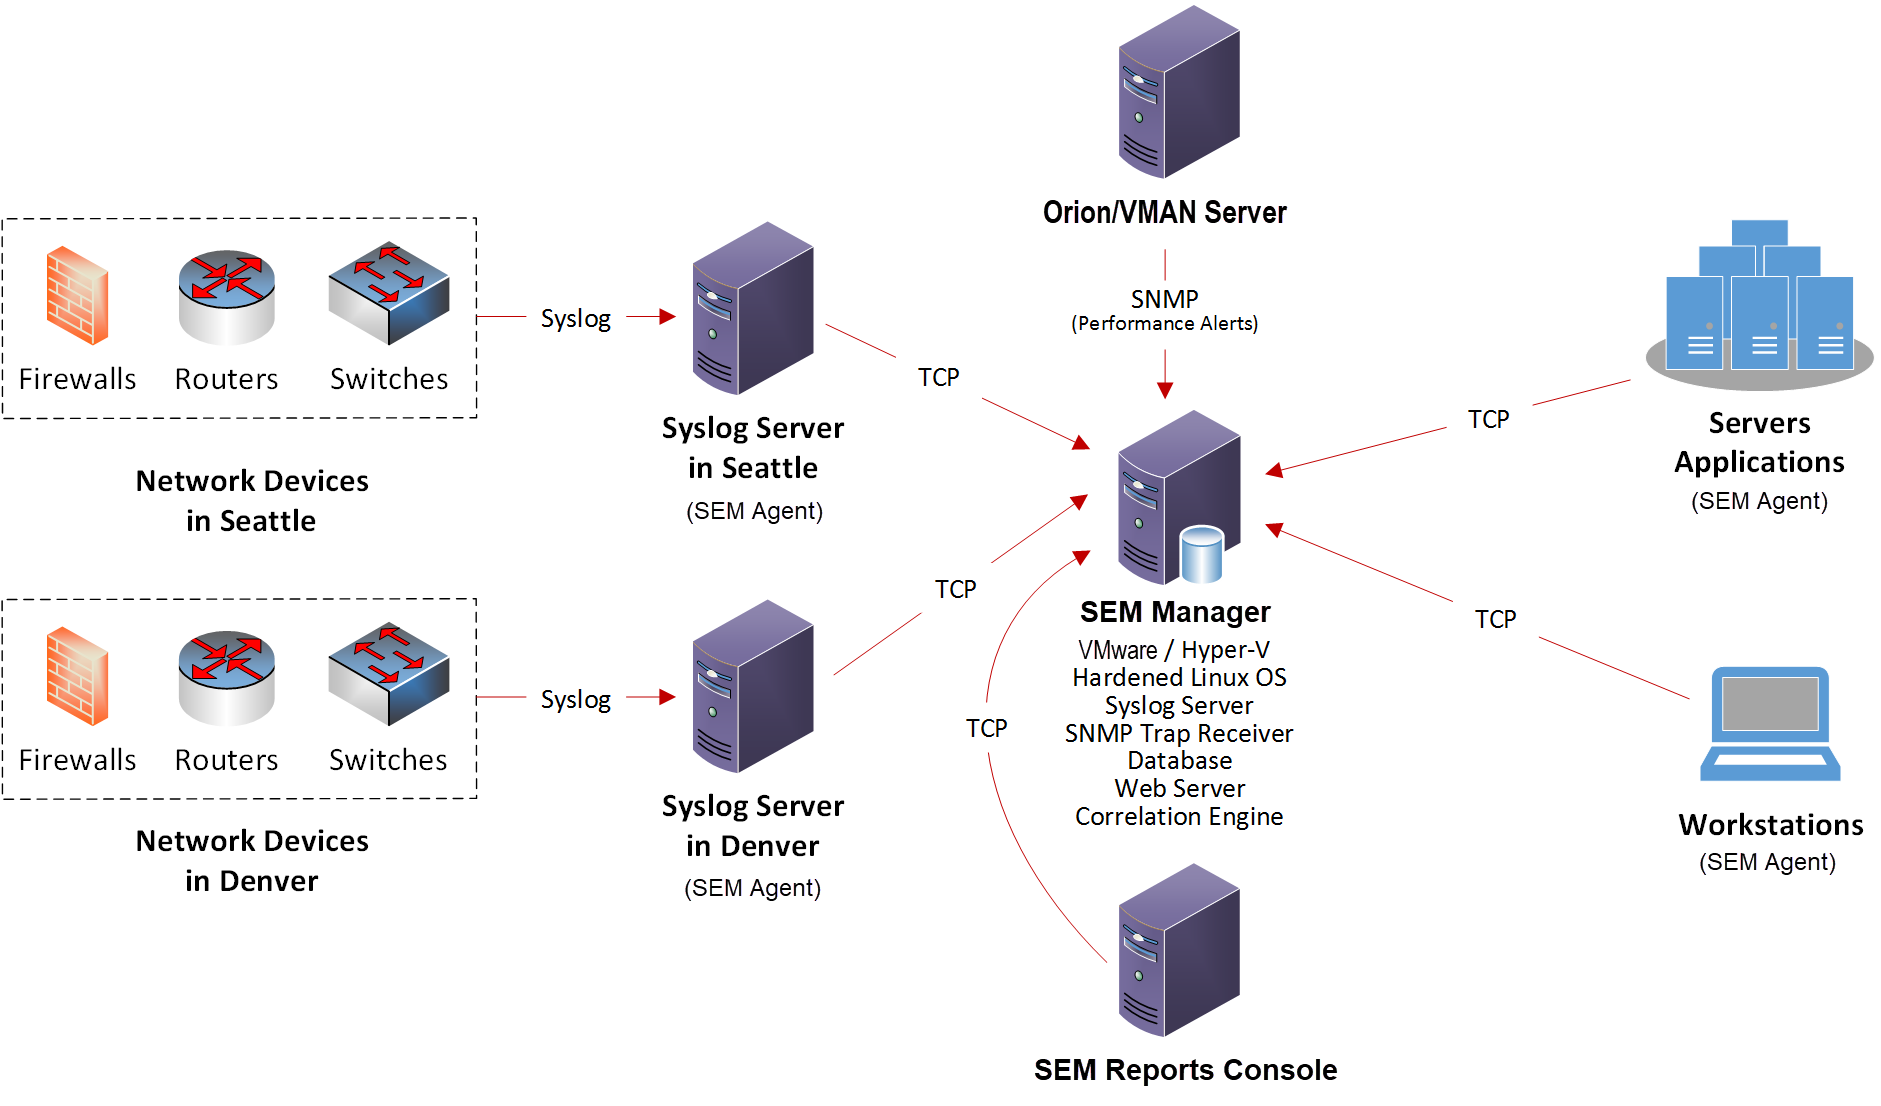 Complex deployment example with multiple syslog servers